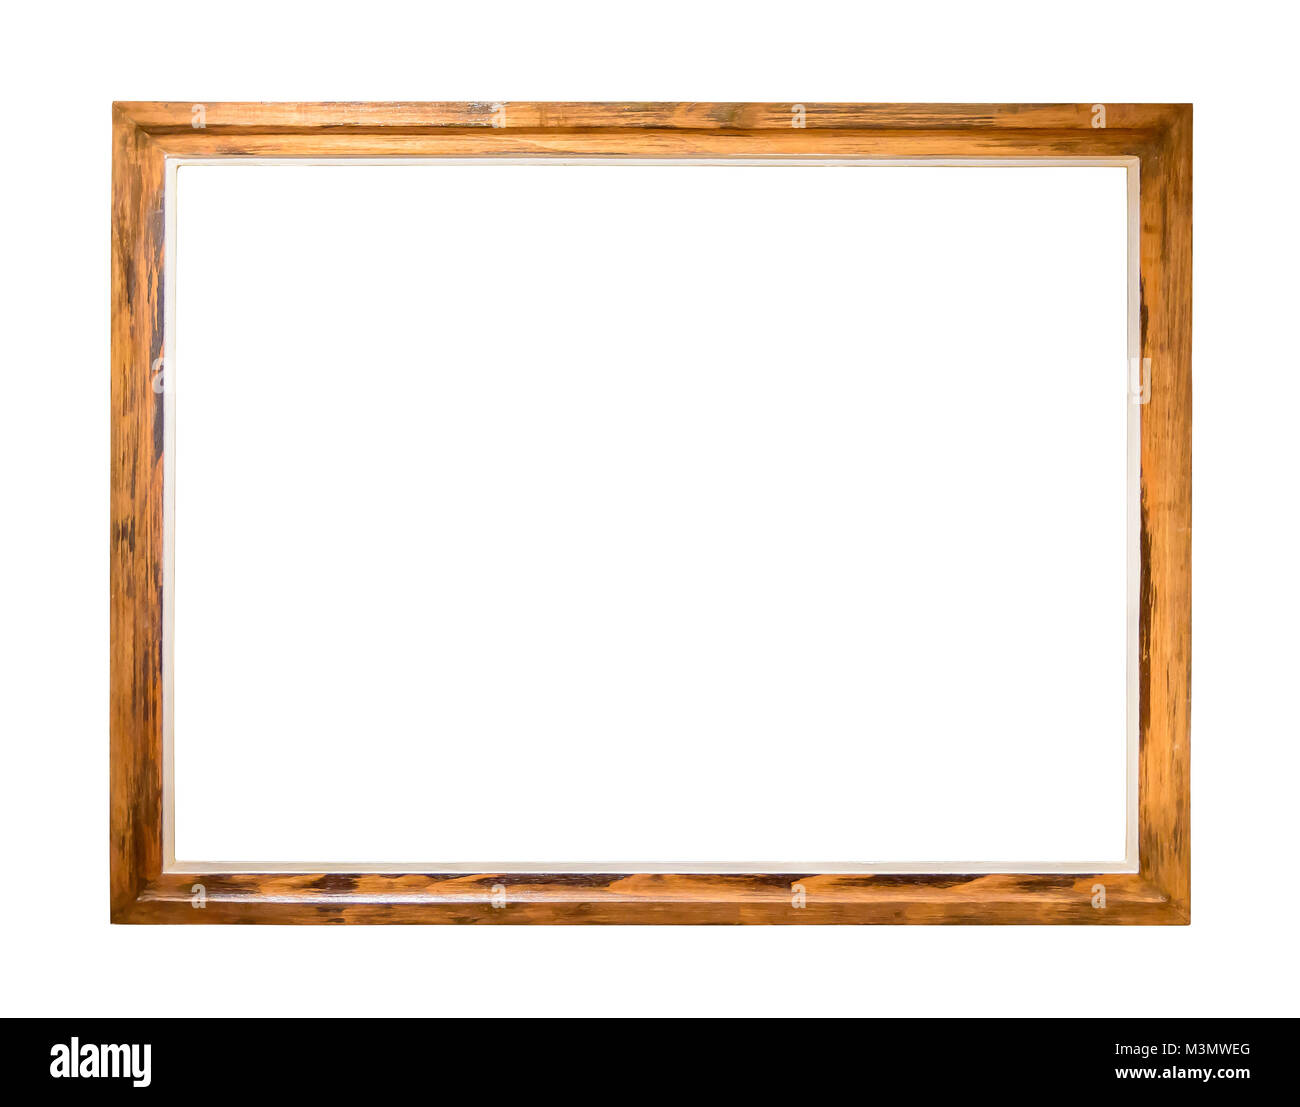 Wooden picture frame isolated on white background with clipping path Stock Photo